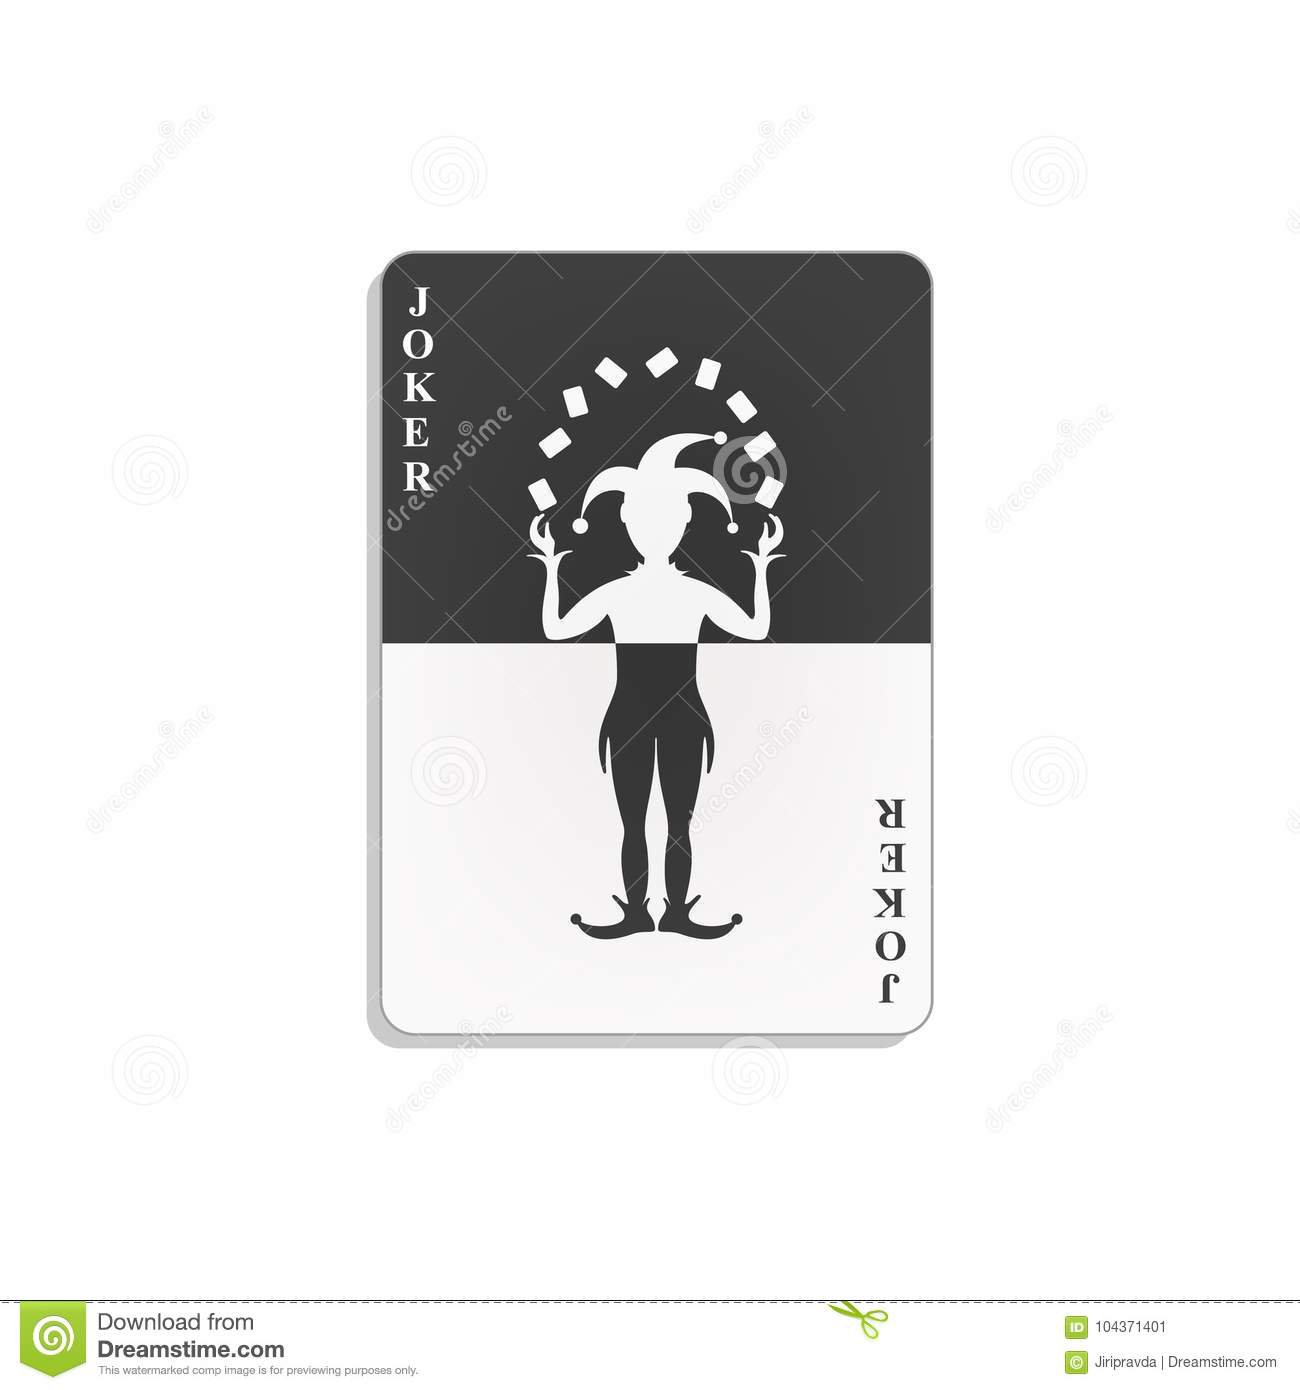 Playing card with joker in black and white design